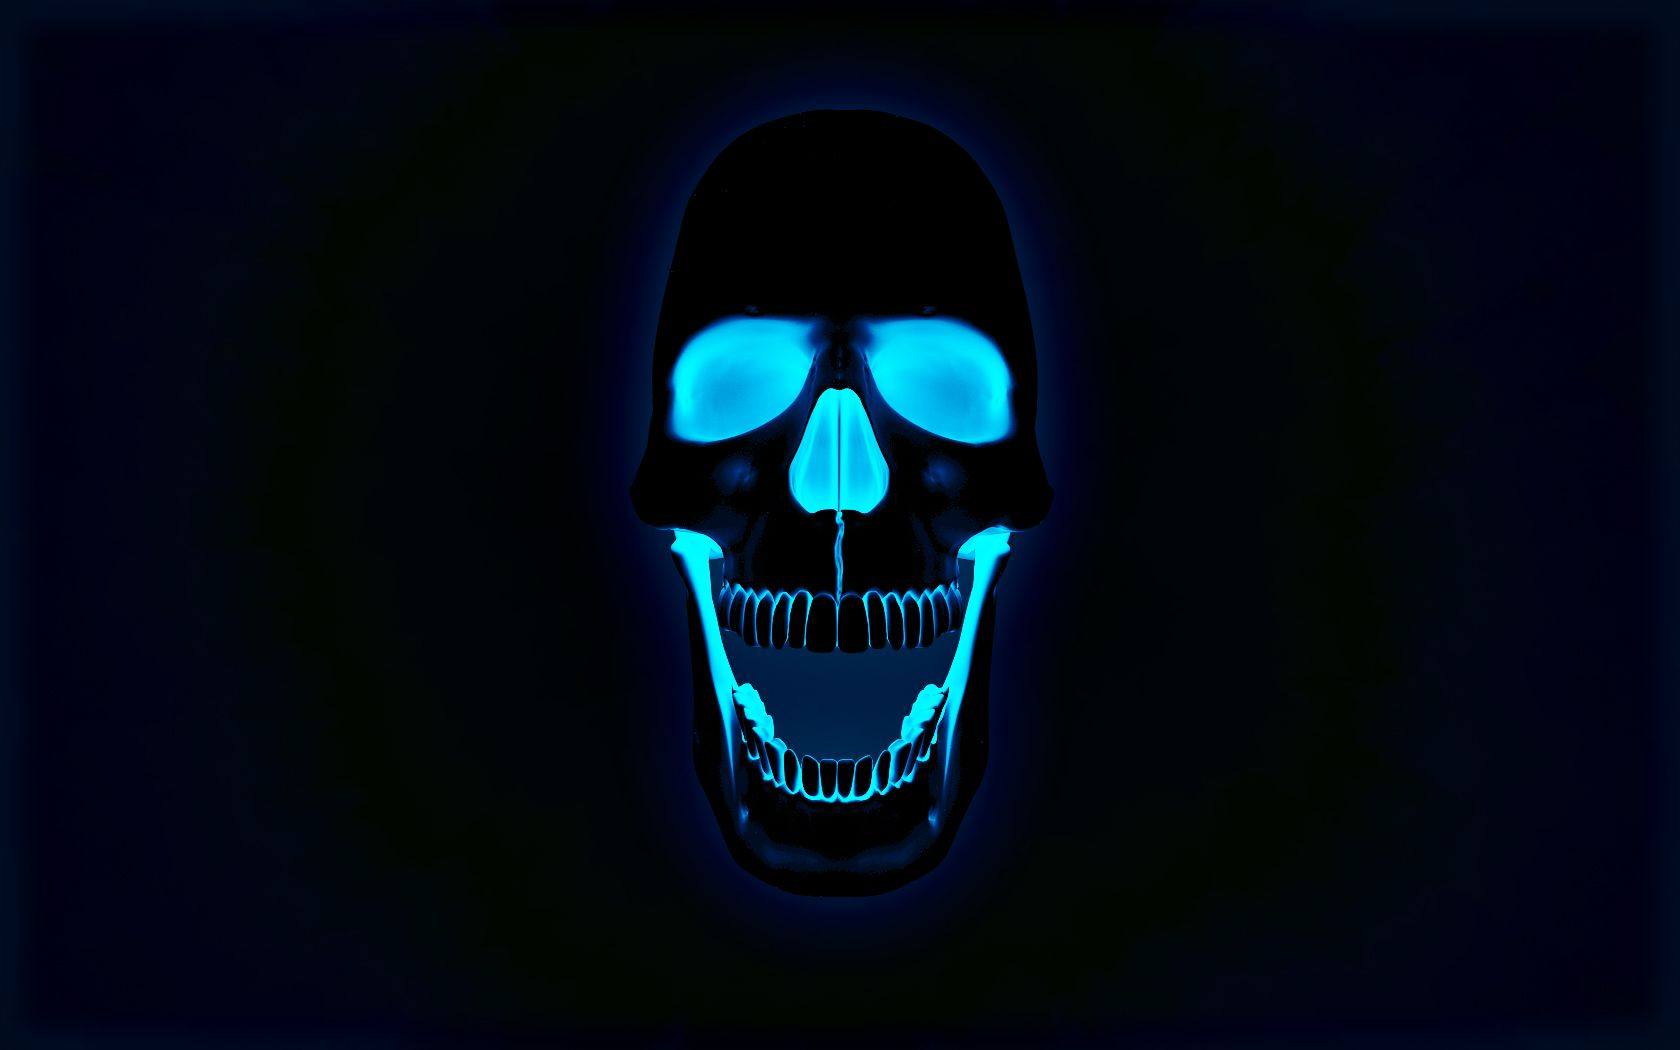 Download Skull Wallpaper Hd Resolution Is Cool Wallpapers At Sxga 16 10 720p Standard Smartwatch H Skull Wallpaper Sugar Skull Wallpaper Black Skulls Wallpaper